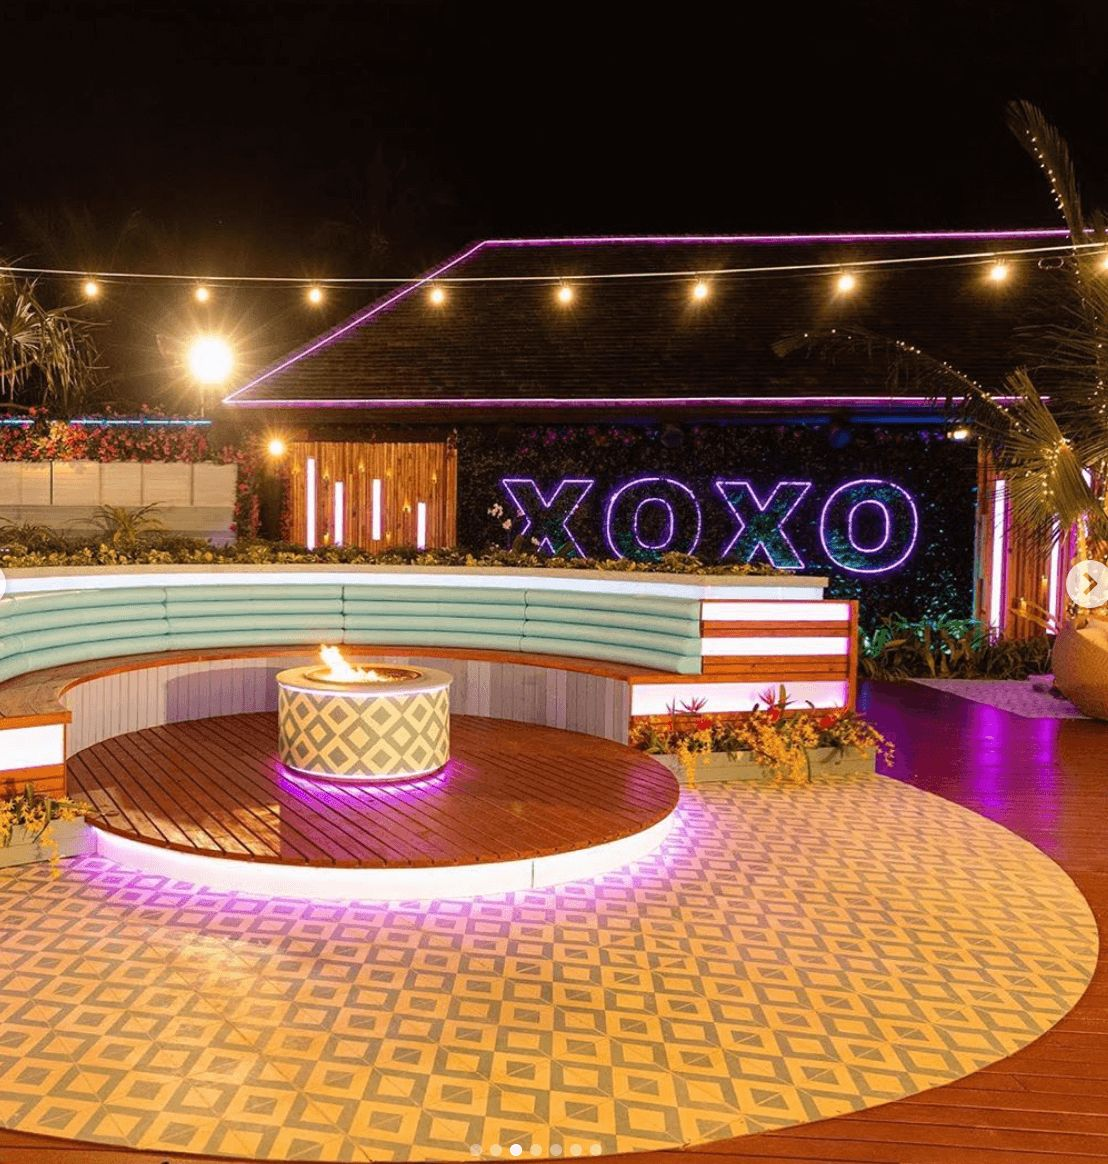 Image may contain: Love Island USA villa, Love Island USA, villa, Fiji, fire pit, Love Island, CBS Club, Crowd, Lighting